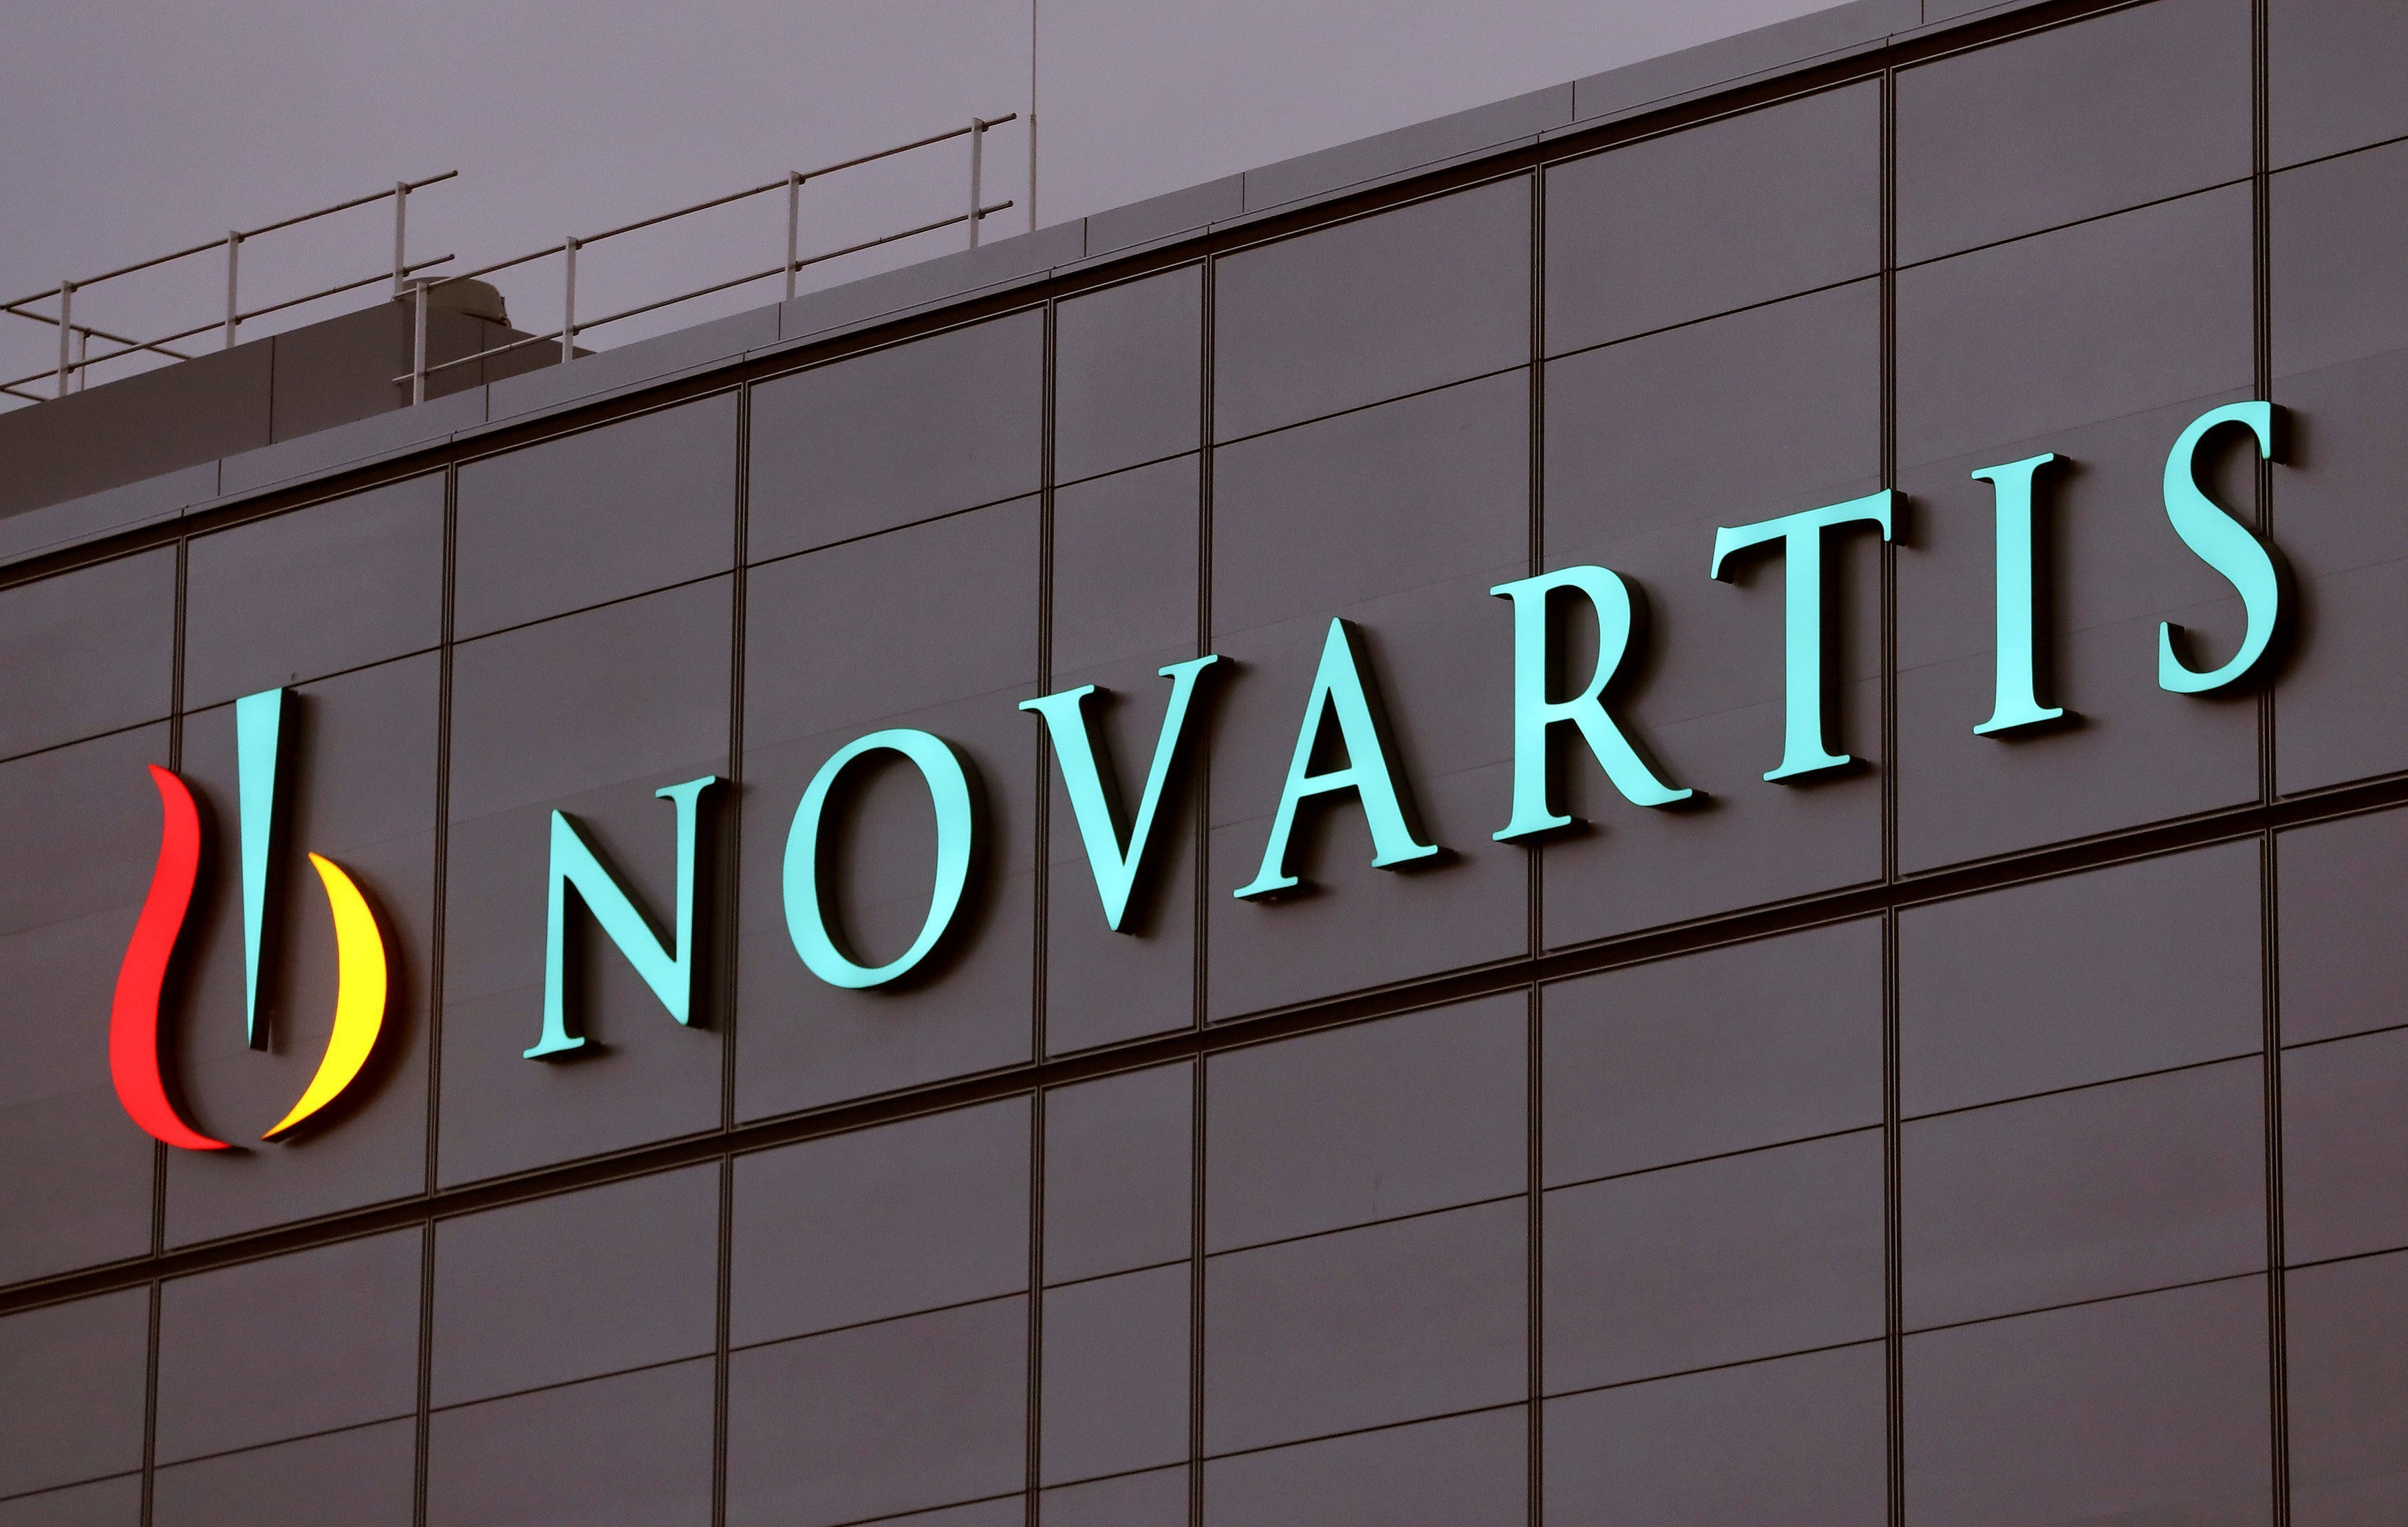 The US Food and Drug Administration said the drug's safety had been tested in an ongoing clinical trial. — Novartis website